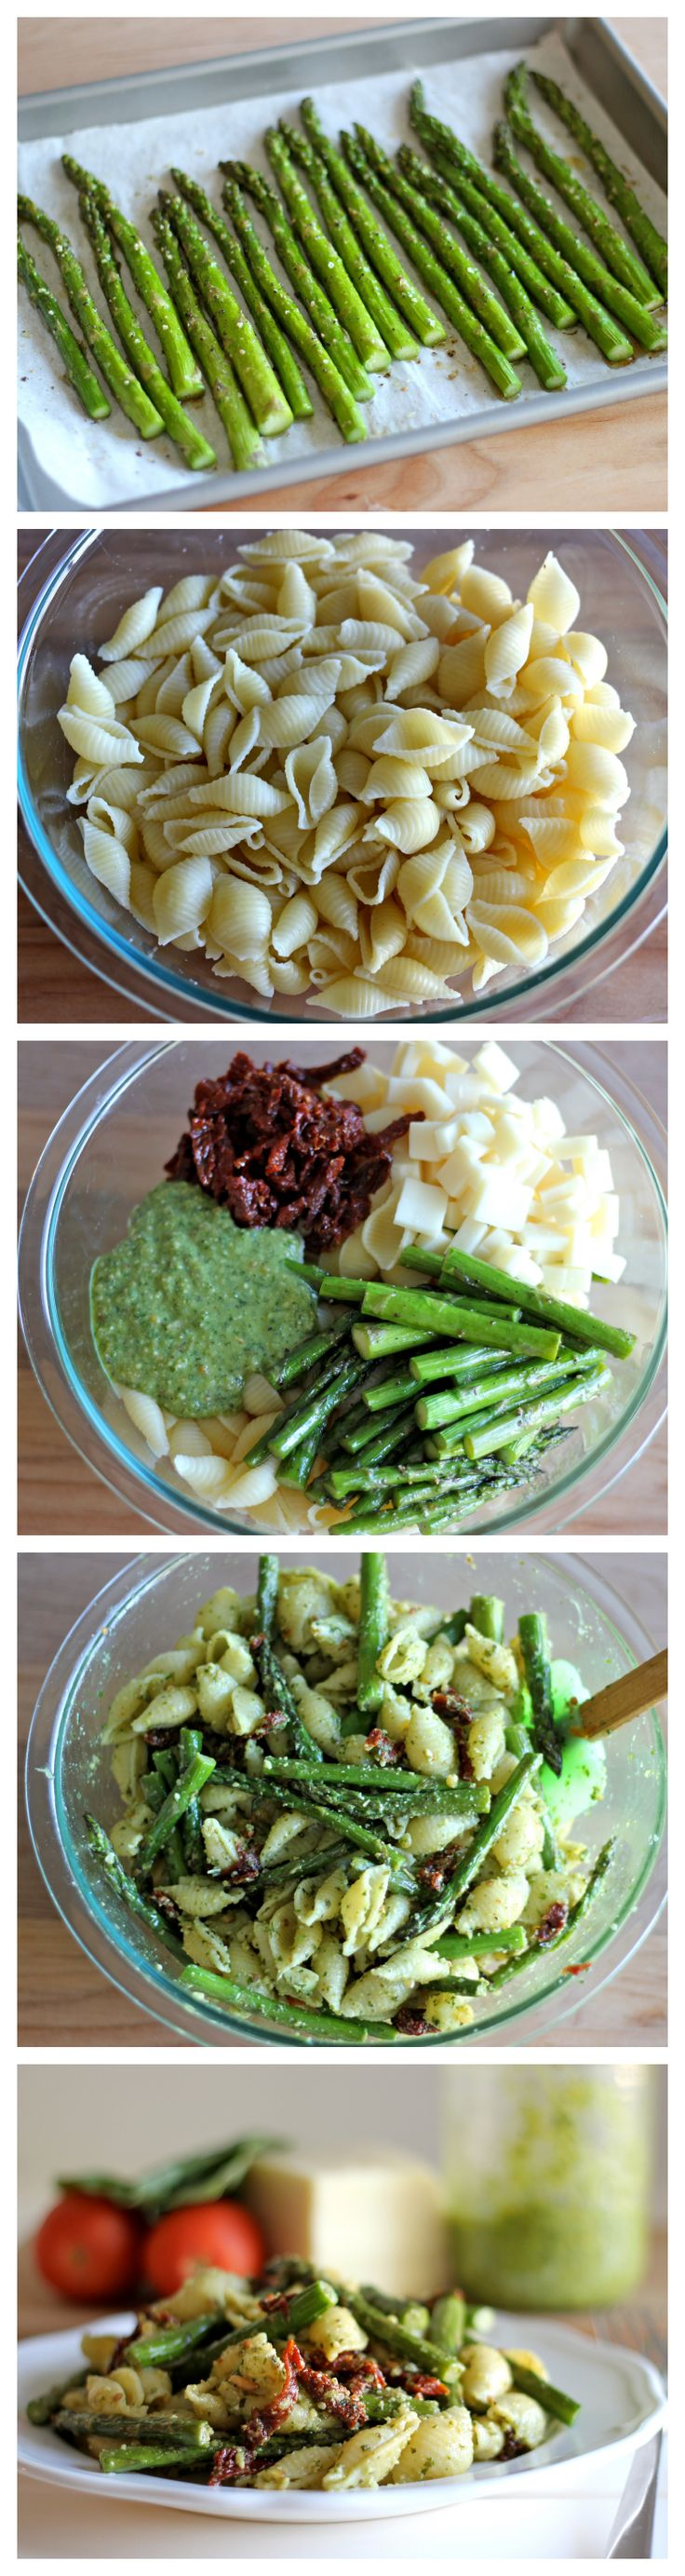 Pesto Pasta with Sun Dried Tomatoes and Roasted AsparagusSpaghetti Squash, Dishes With Pesto, Pesto Pasta, Business Weeknight, Sun Dry Tomatoes, Gluten Free, Roasted Asparagus, Easy Dishes, Asparagus Recipe